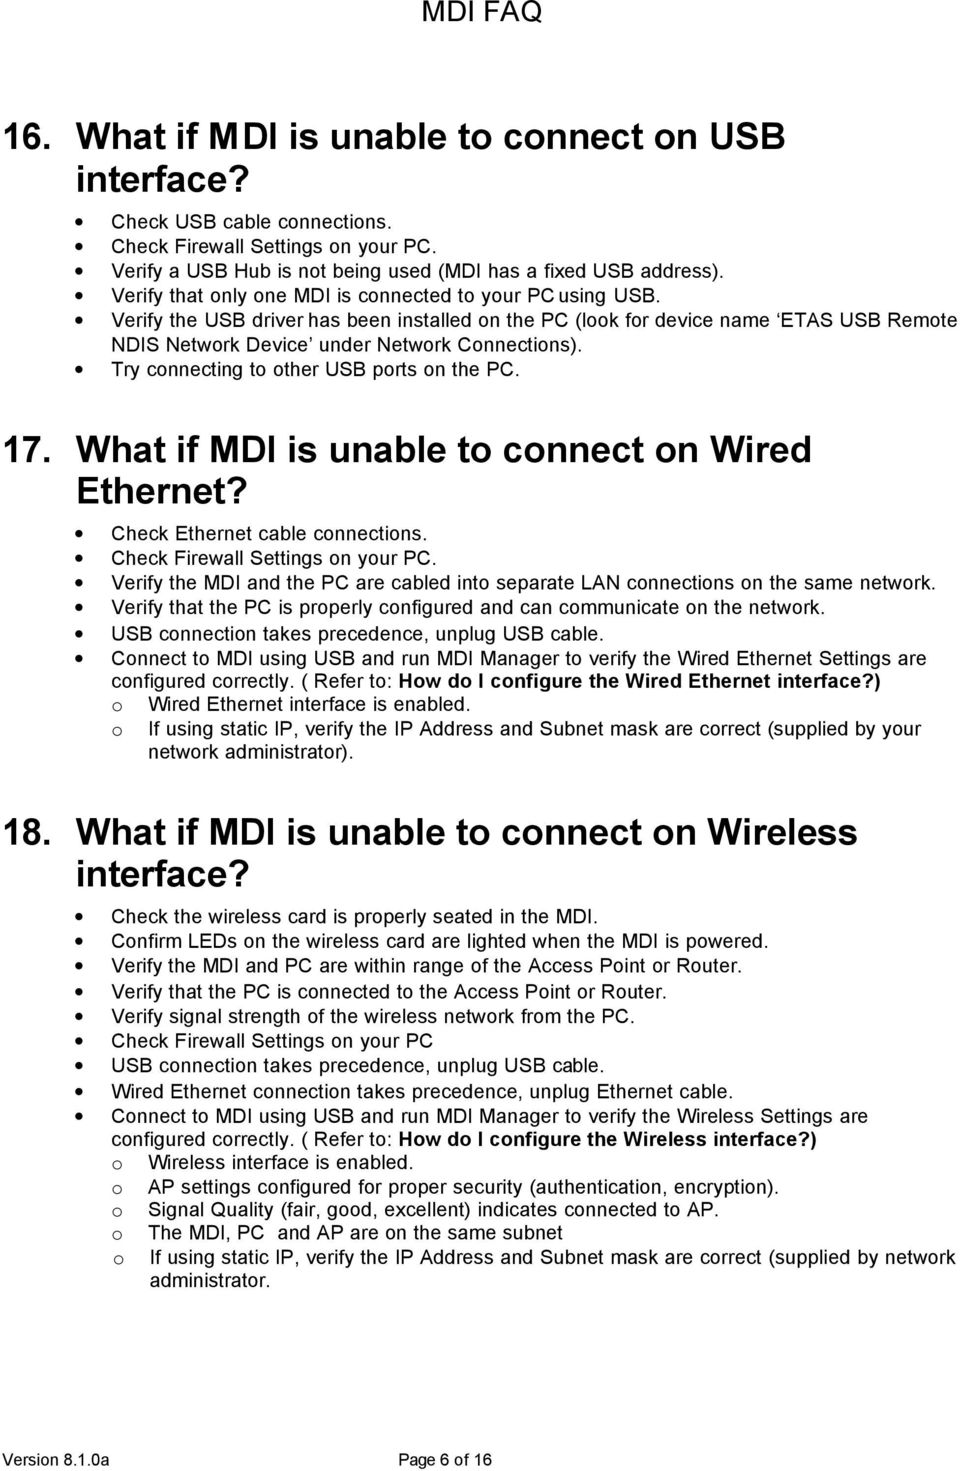 Mdi Faq Version 810a Page 1 Of 16 Pdf Wired Network Cable Diagram Try Connecting To Other Usb Ports On The Pc 17 What If Is